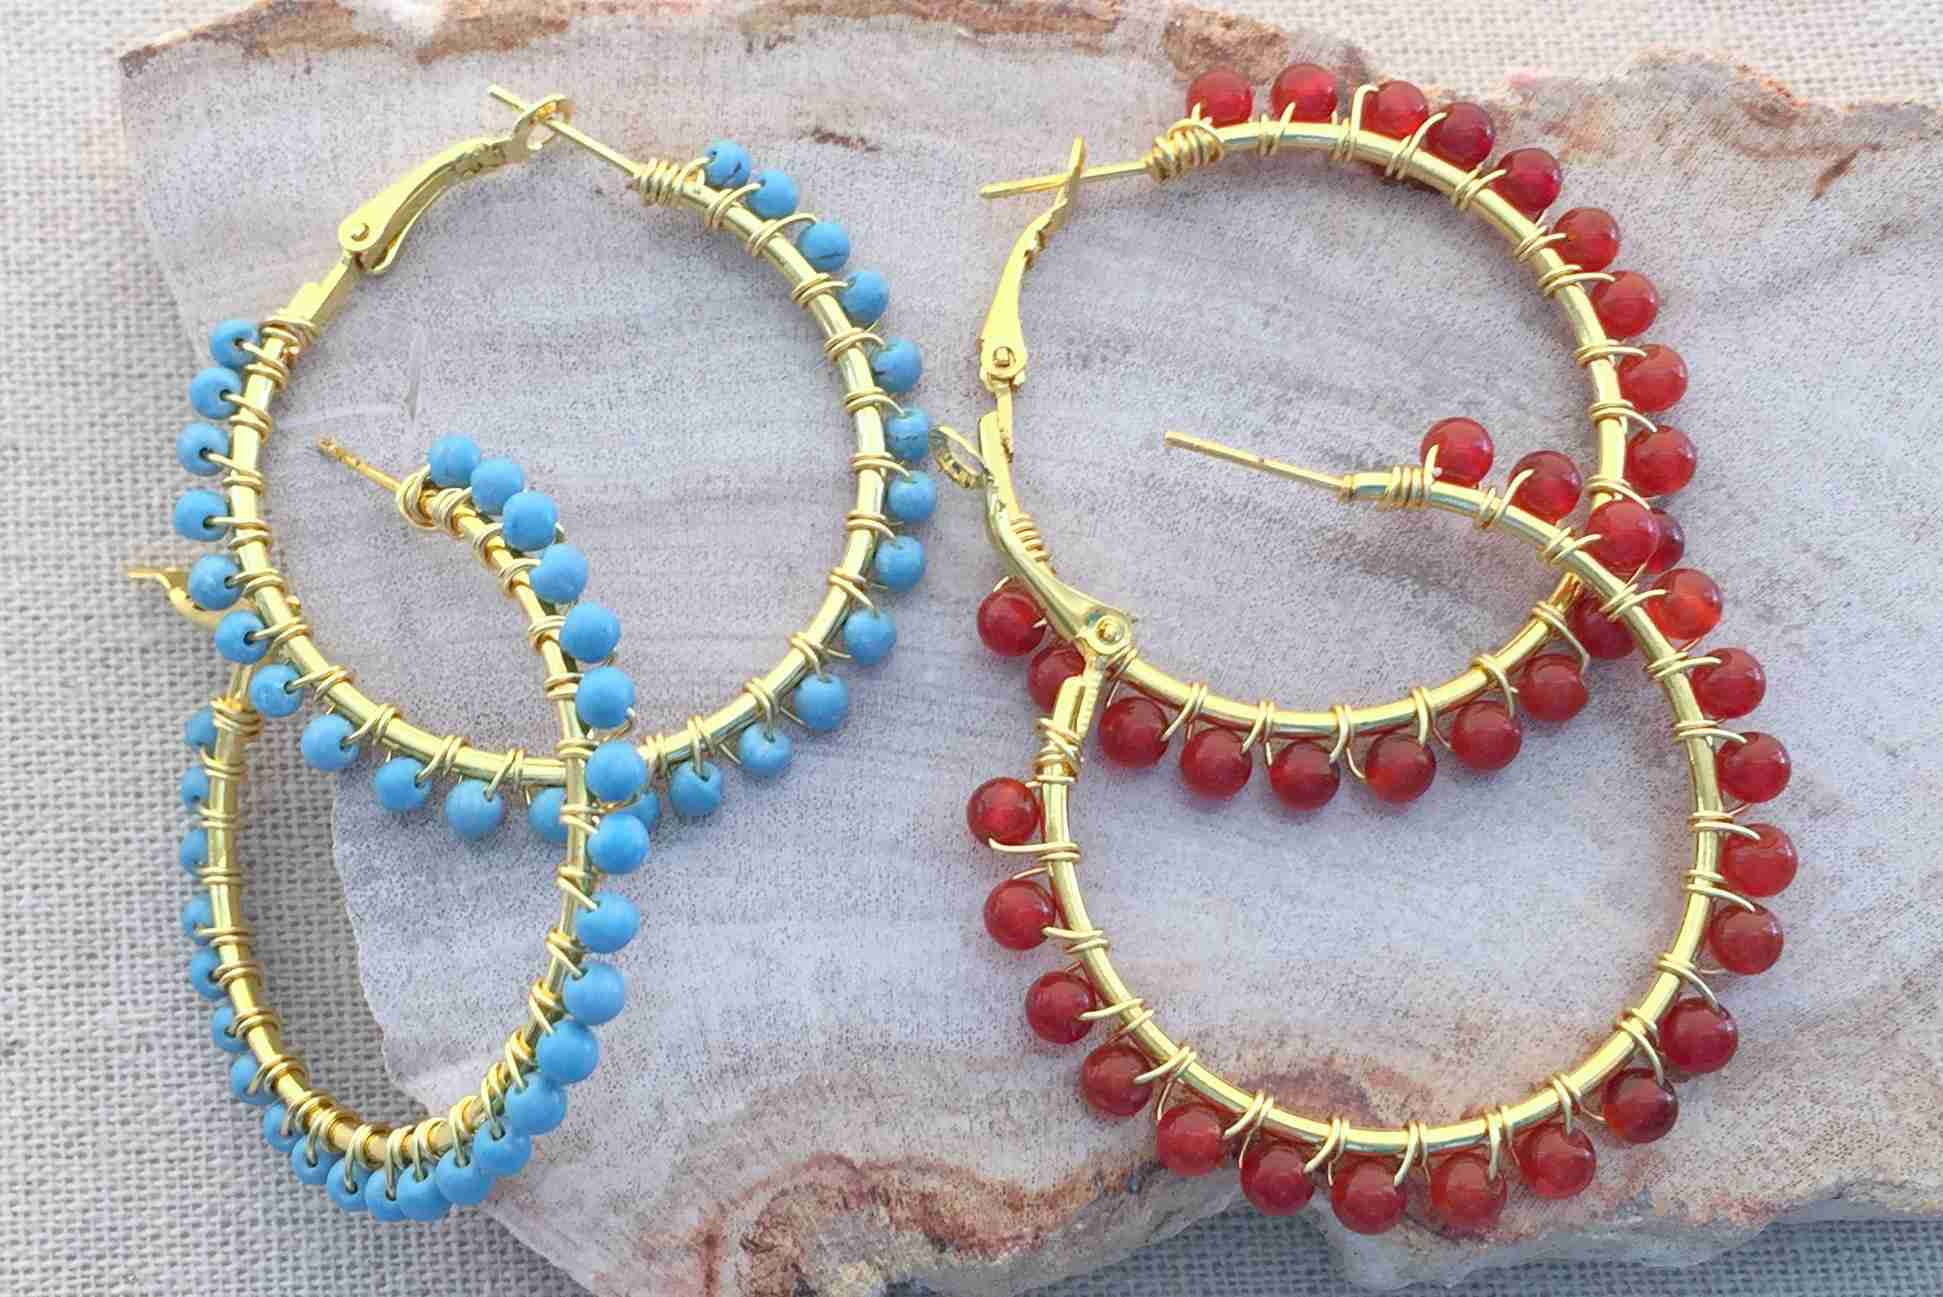 Wire Wred Bead Hoop Earrings Tutorial